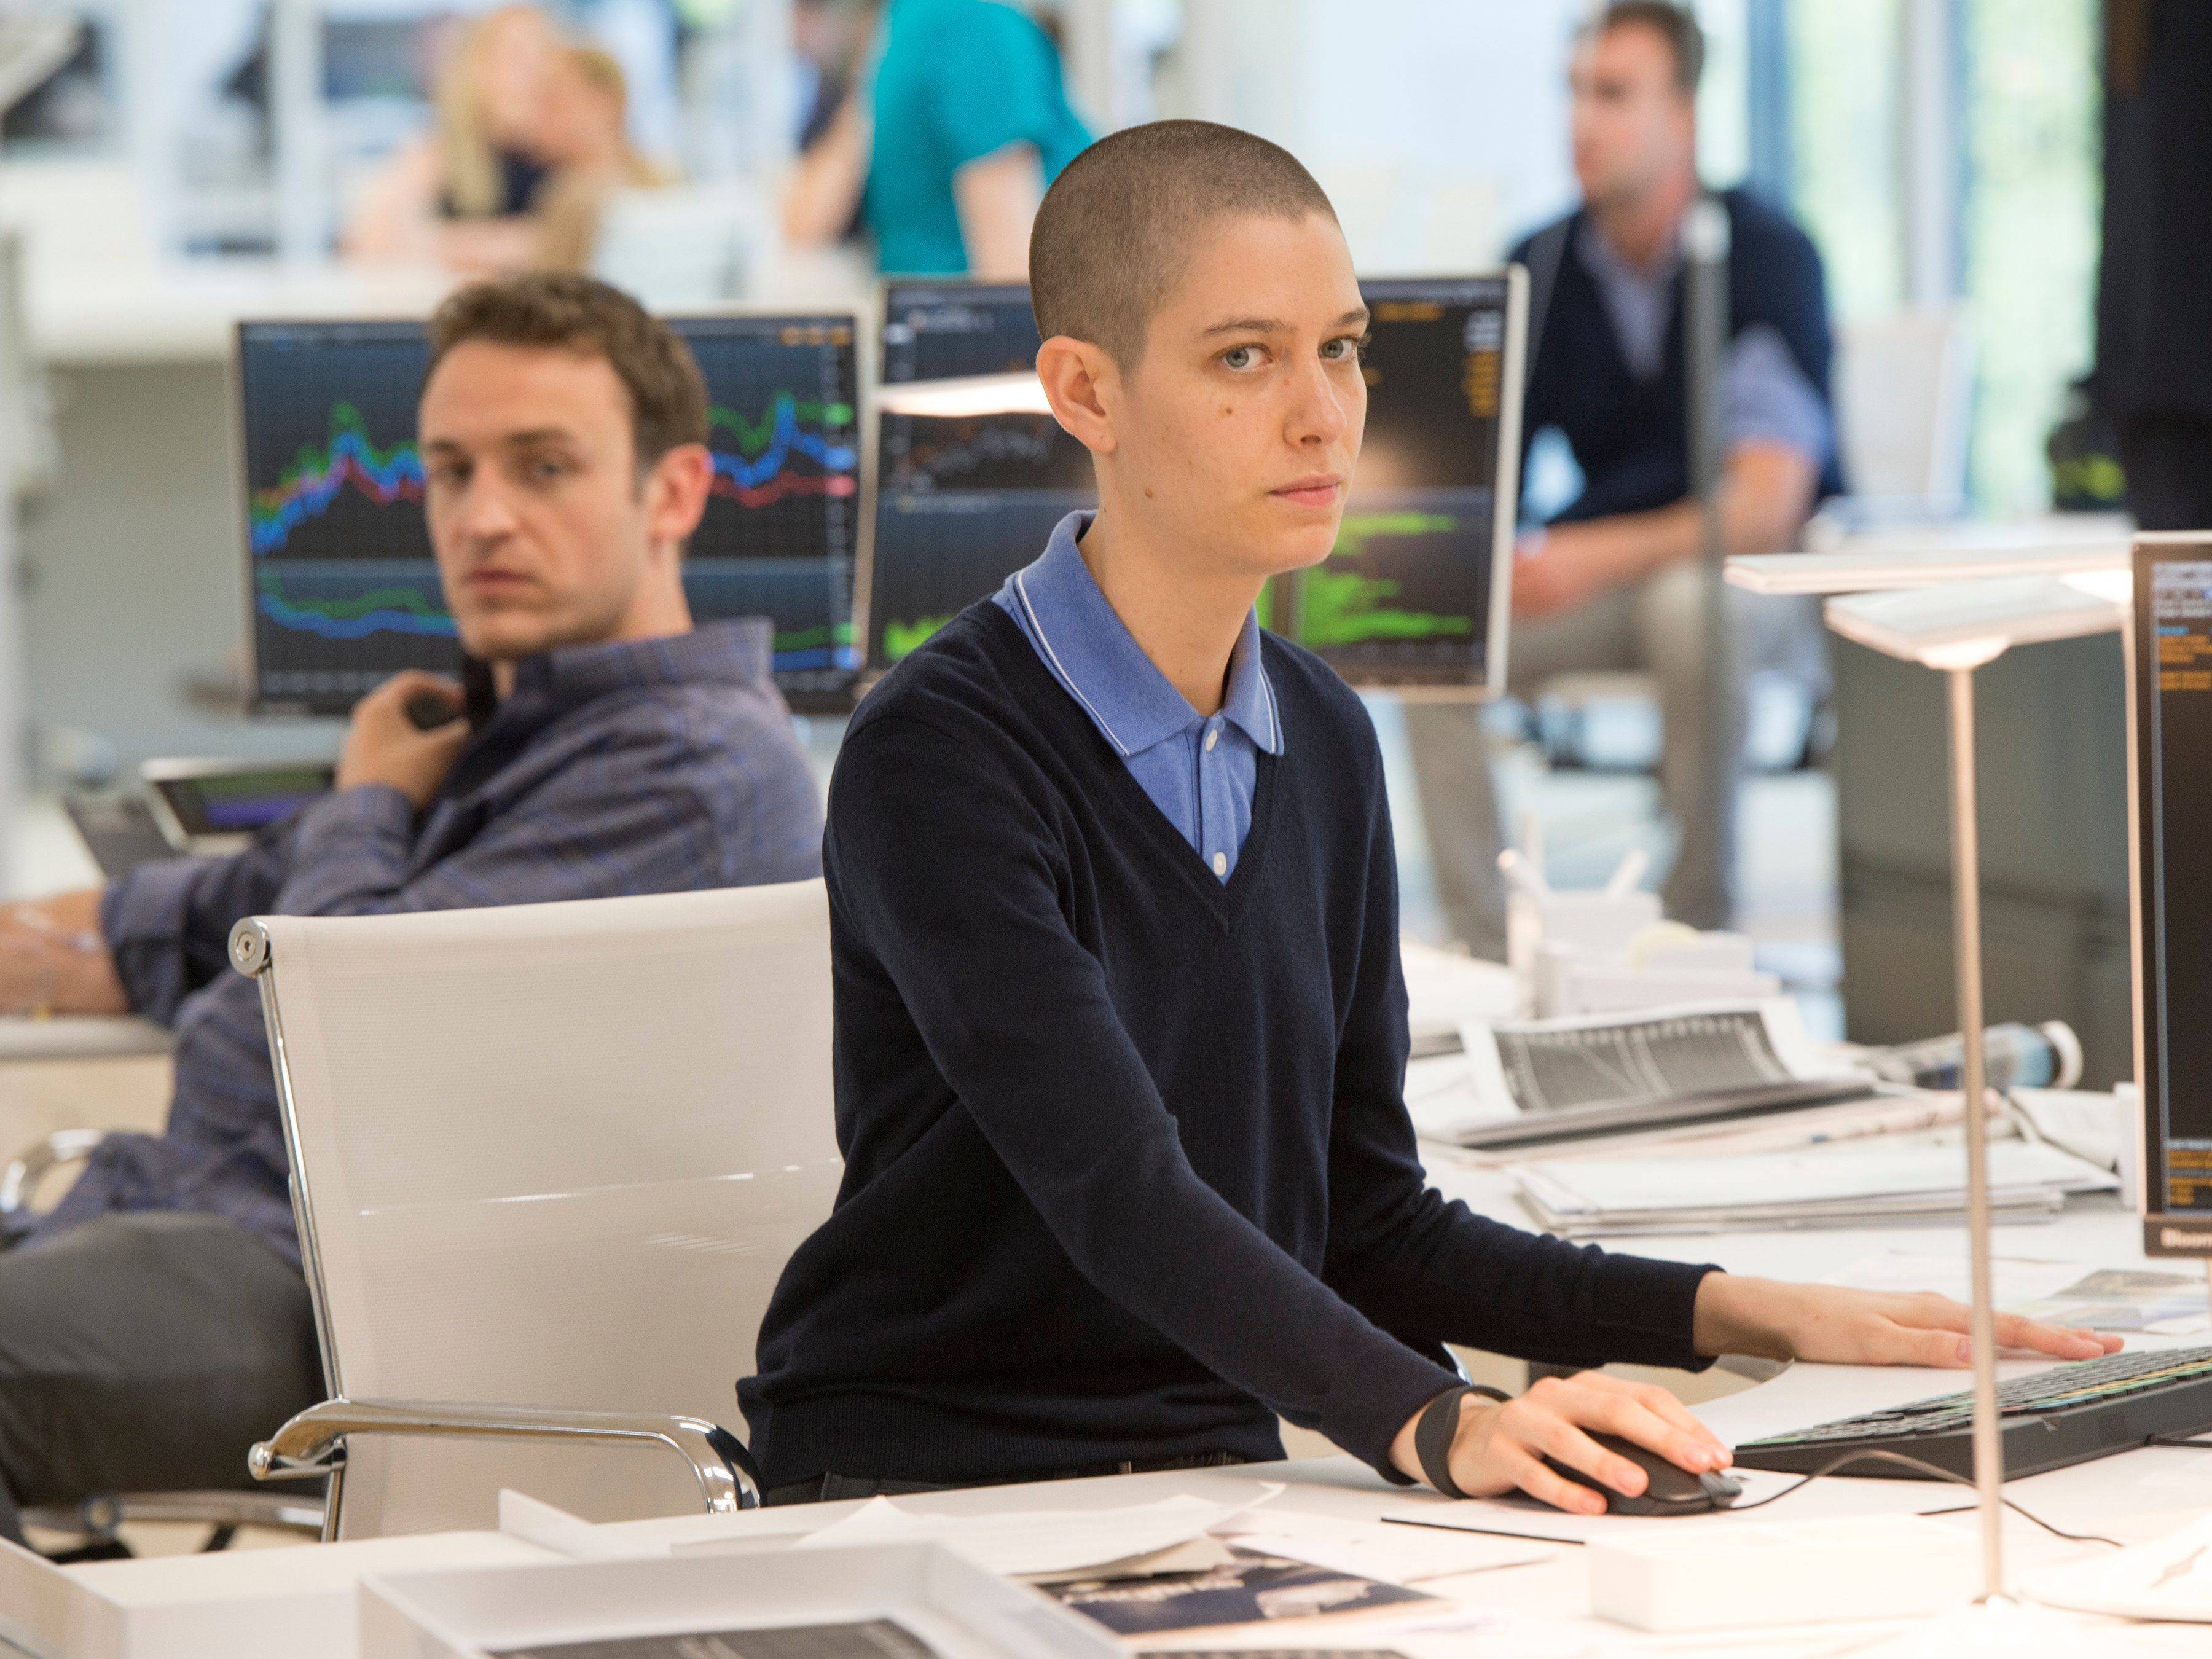 """Asia Kate Dillon joins the cast of Showtime's """"Billions"""" in its second season."""